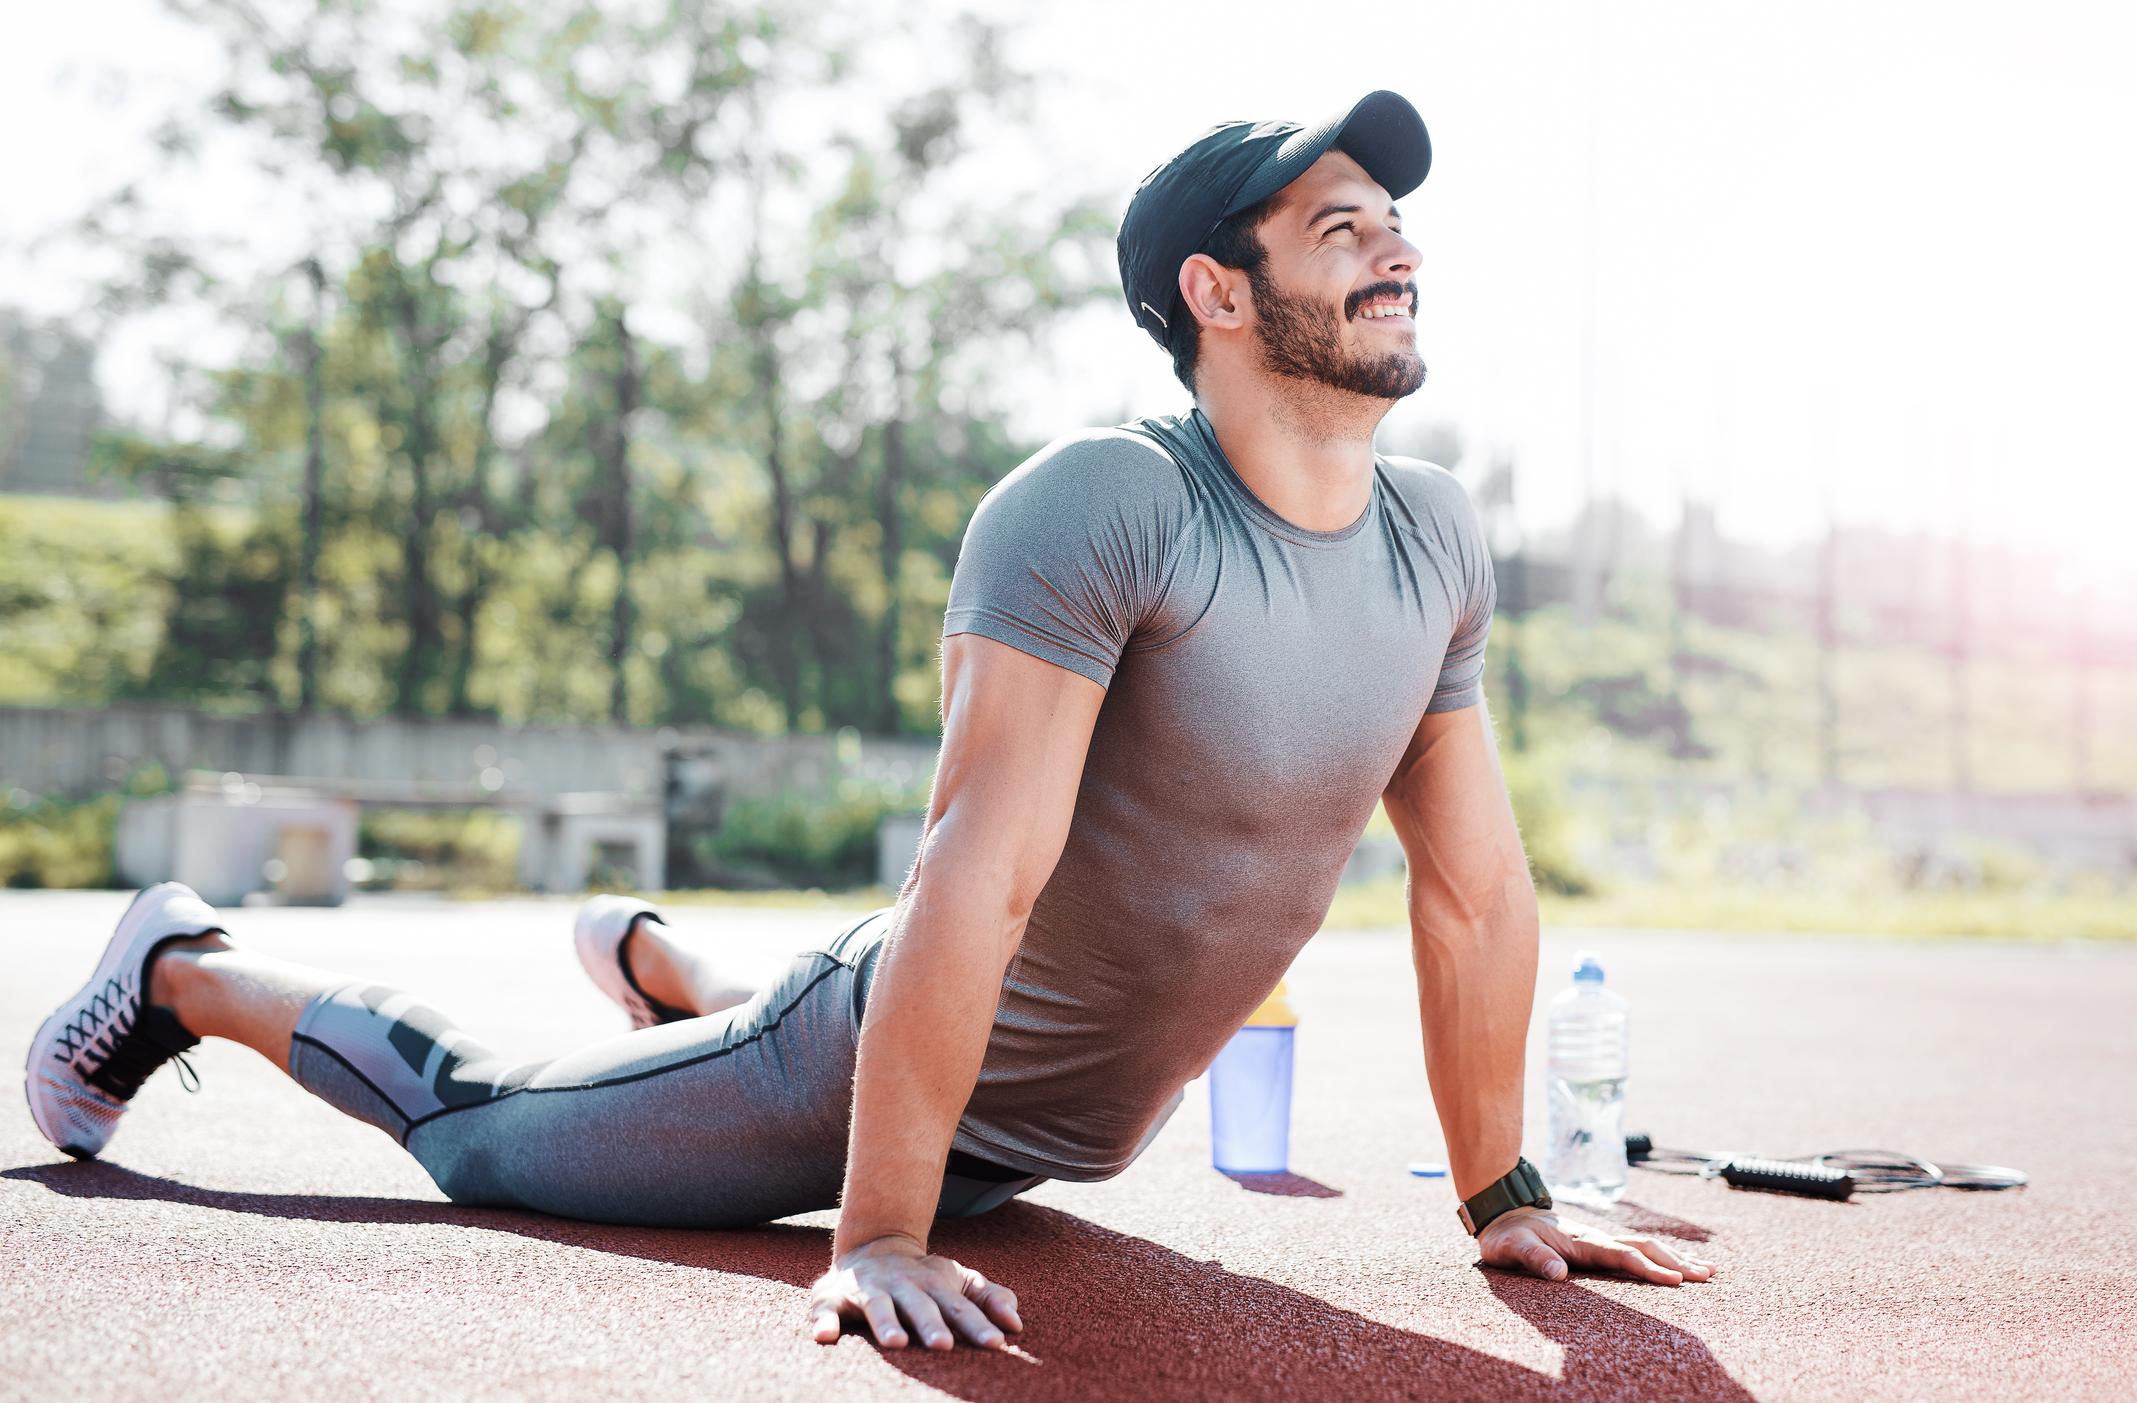 Generic photo of man stretching (Thinkstock/PA)